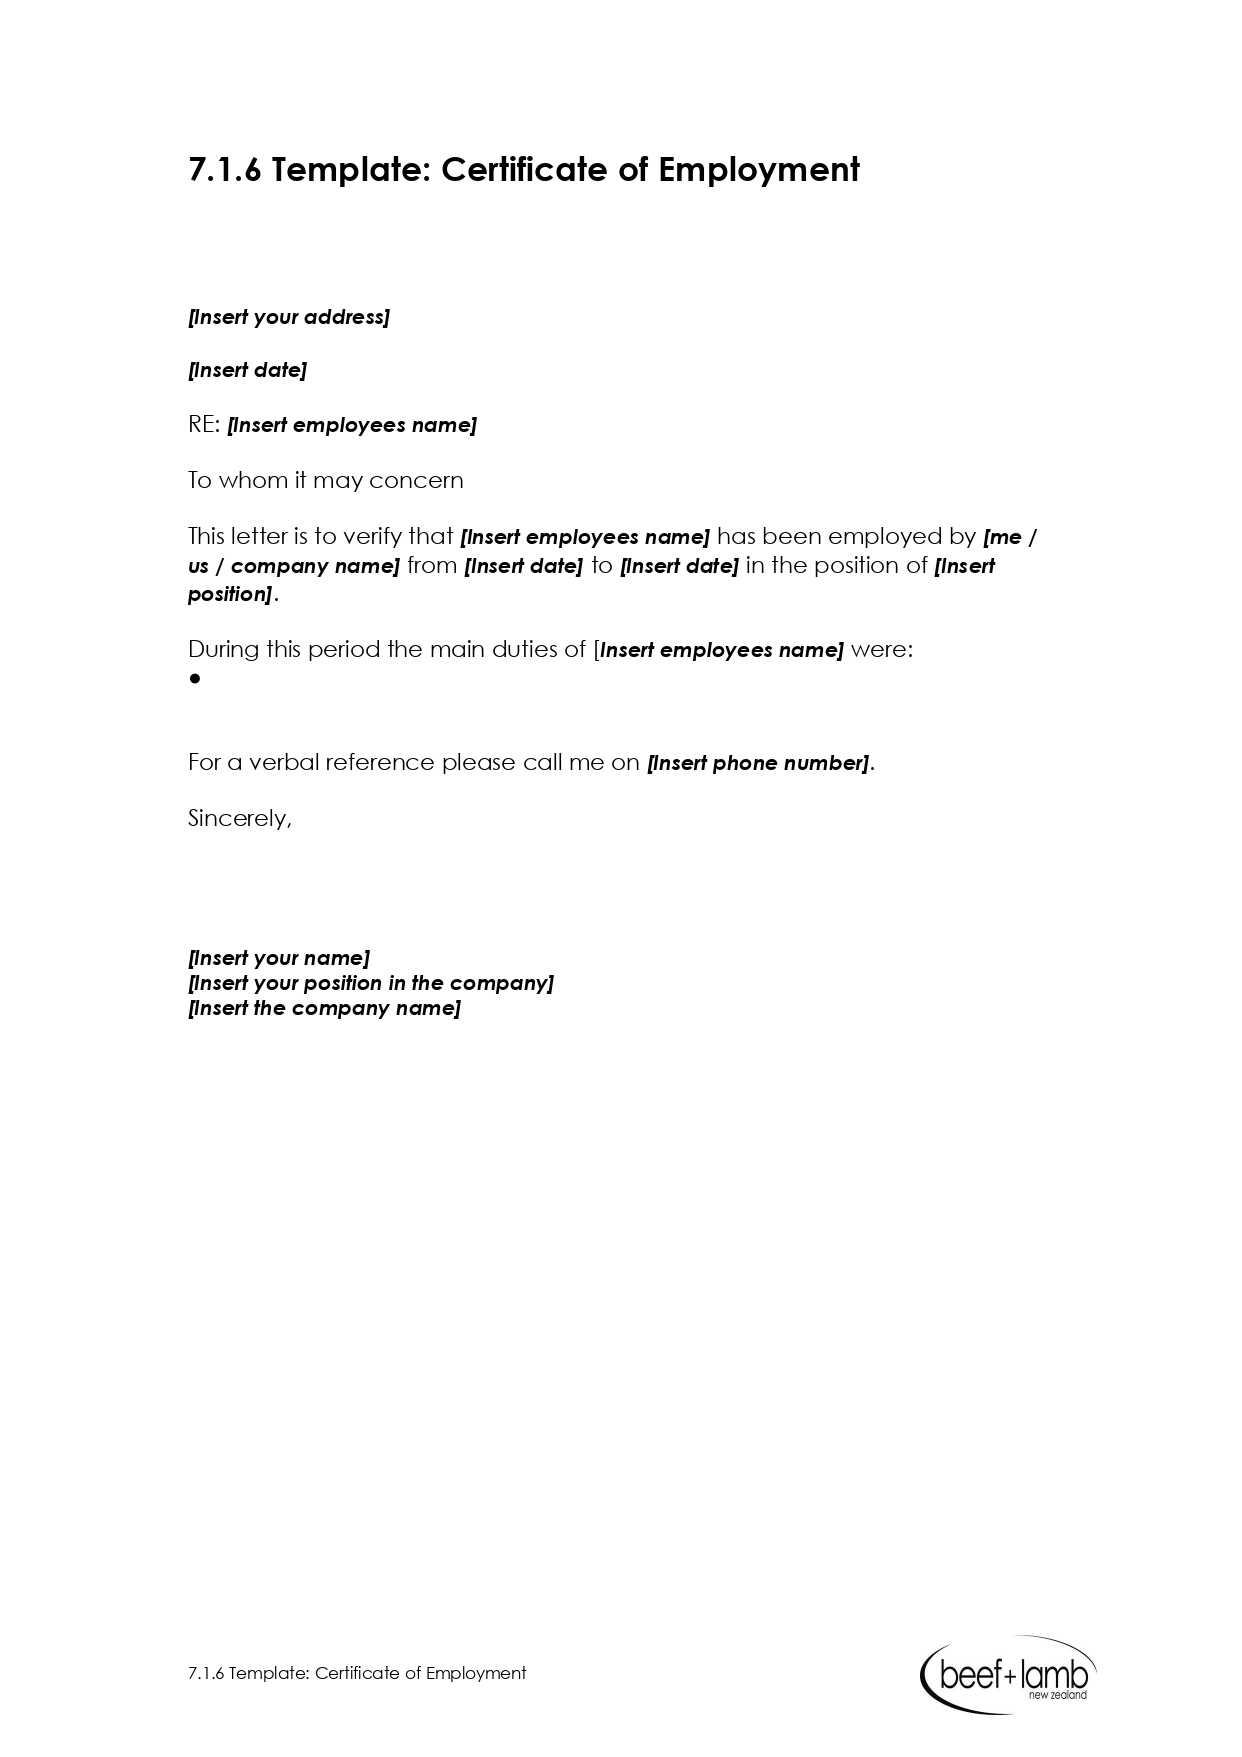 Editable Certificate Of Employment Template - Google Docs Regarding Employee Certificate Of Service Template